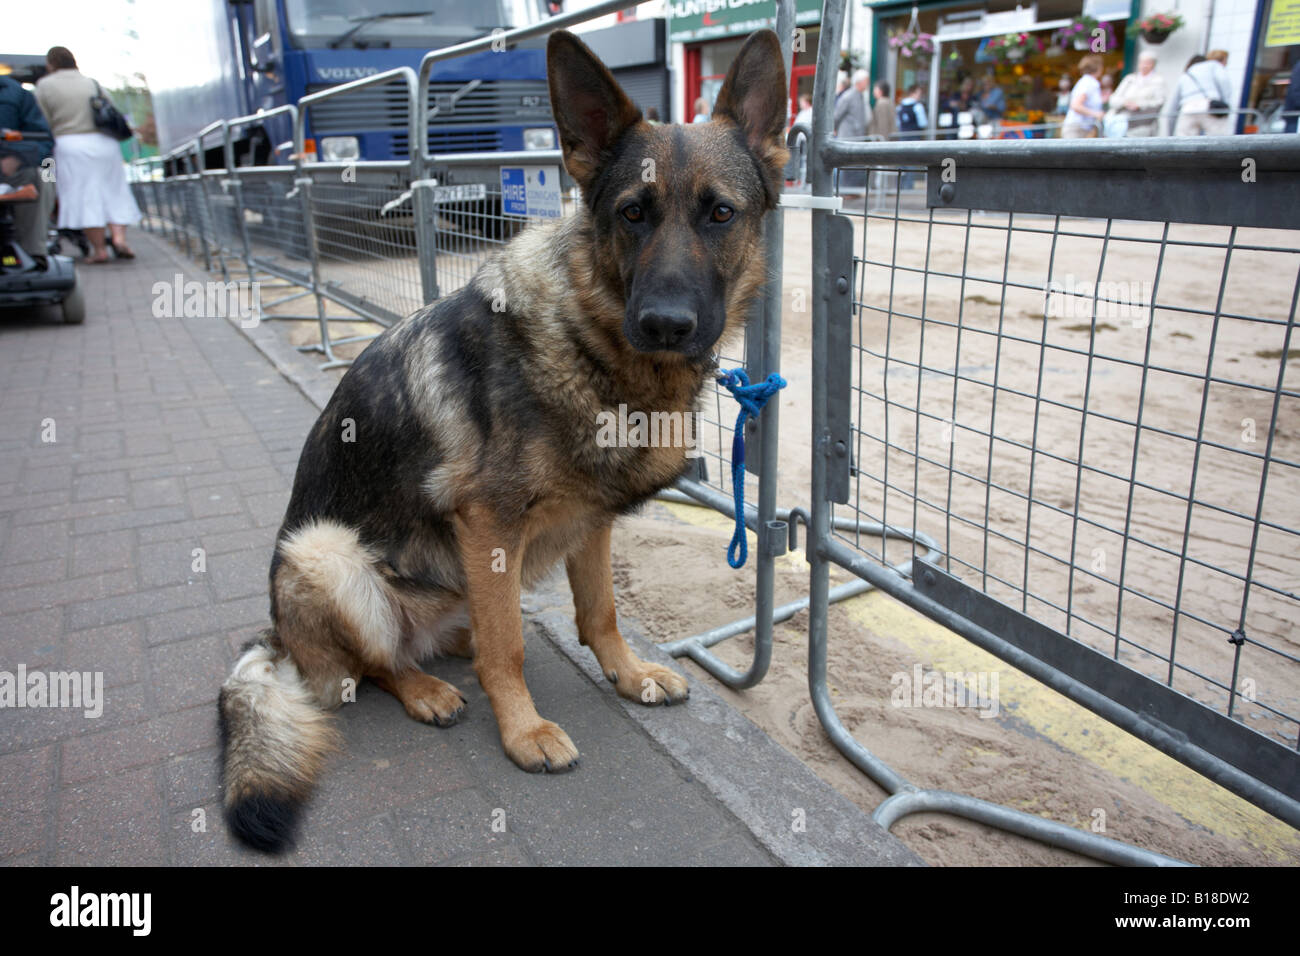 alsatian german shepherd dog tied to fence waiting for owner ballyclare northern ireland - Stock Image